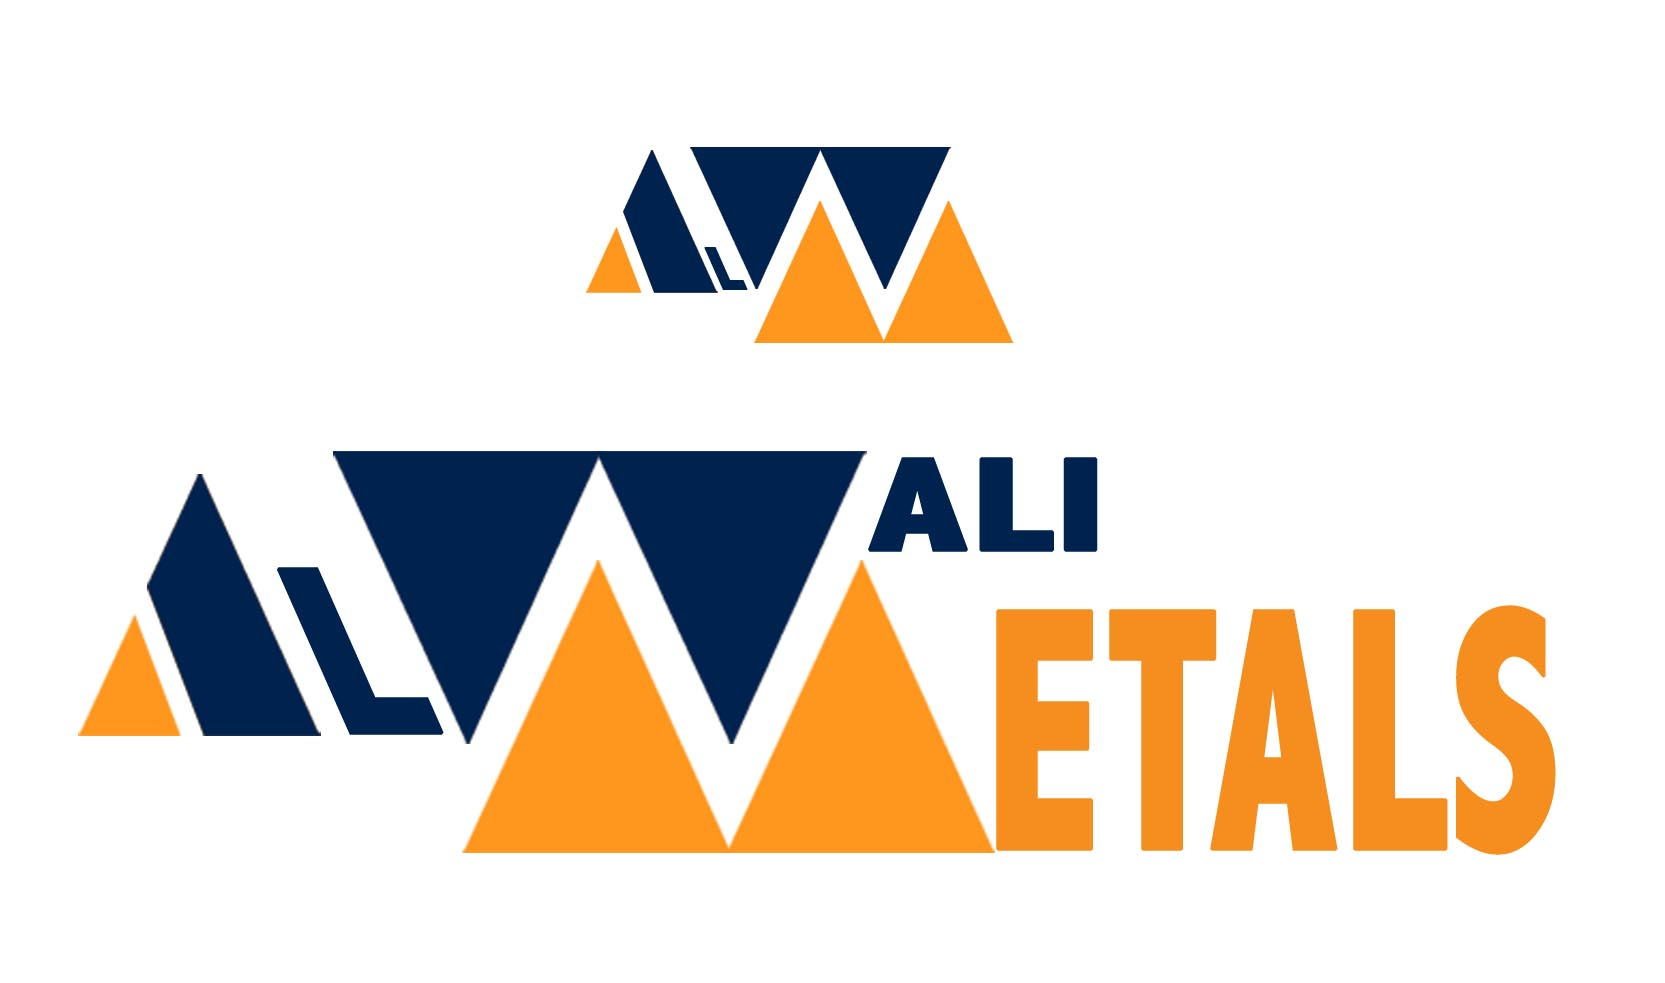 Logo Design by Cesar III Sotto - Entry No. 37 in the Logo Design Contest Inspiring Logo Design for Al Wali Metals.